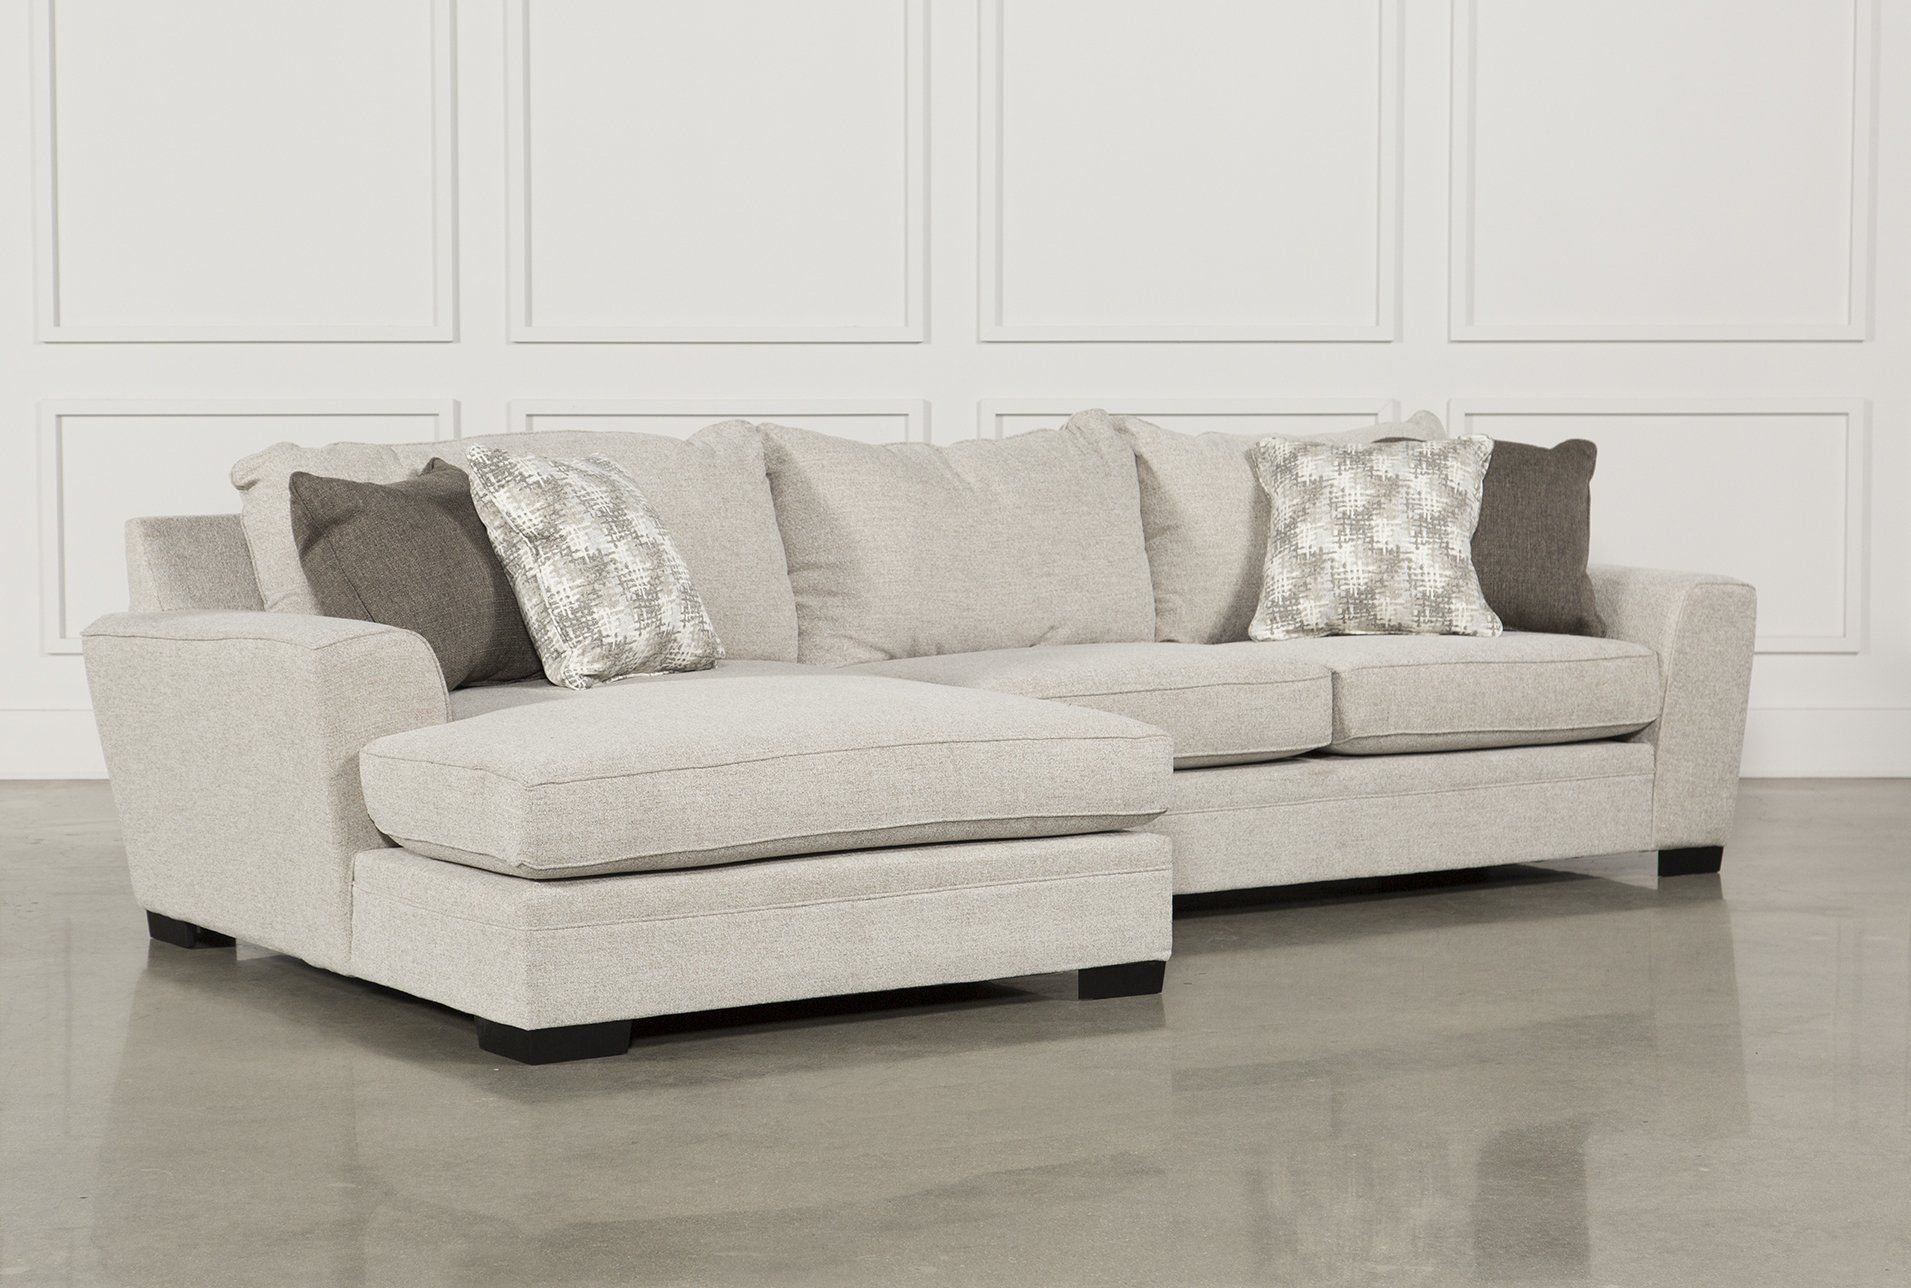 Delano 2 Piece Sectional W/laf Oversized Chaise | Beige Sofa Within Glamour Ii 3 Piece Sectionals (View 11 of 25)